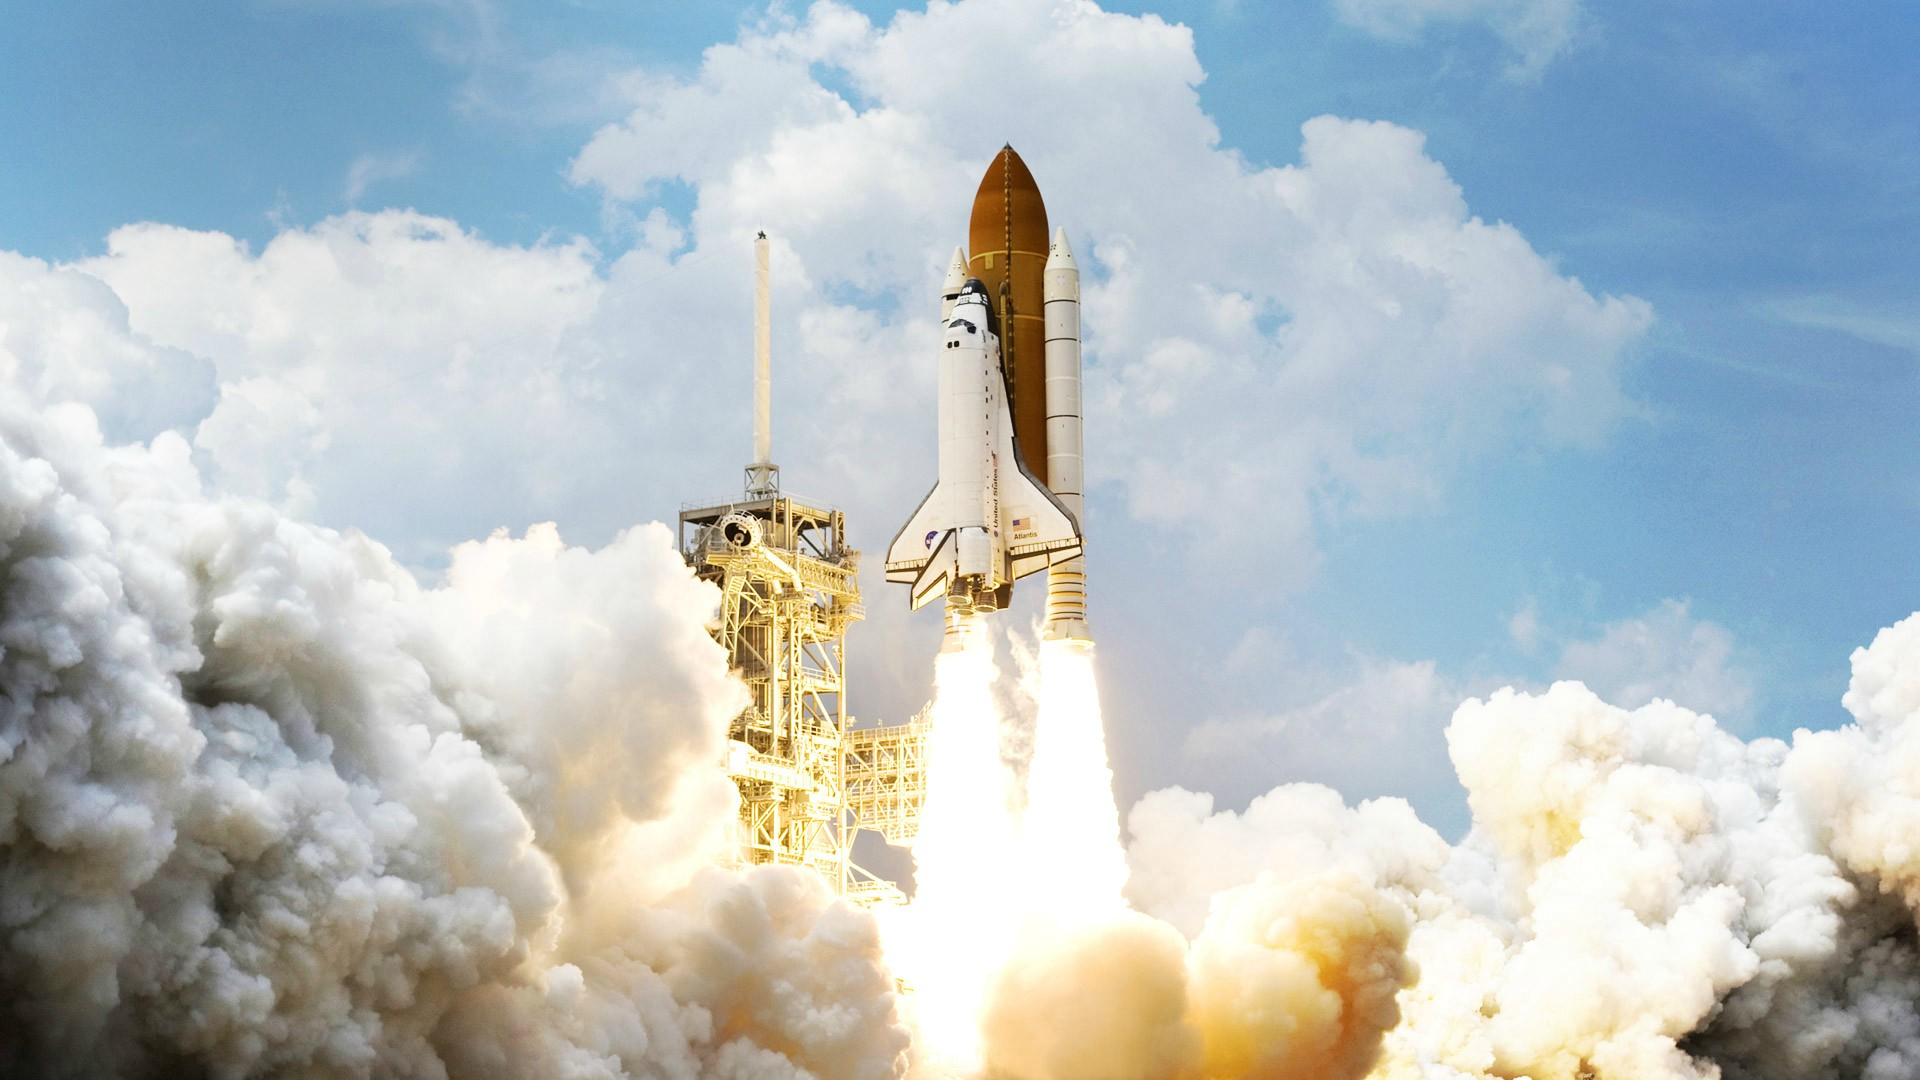 space shuttle space background - photo #22